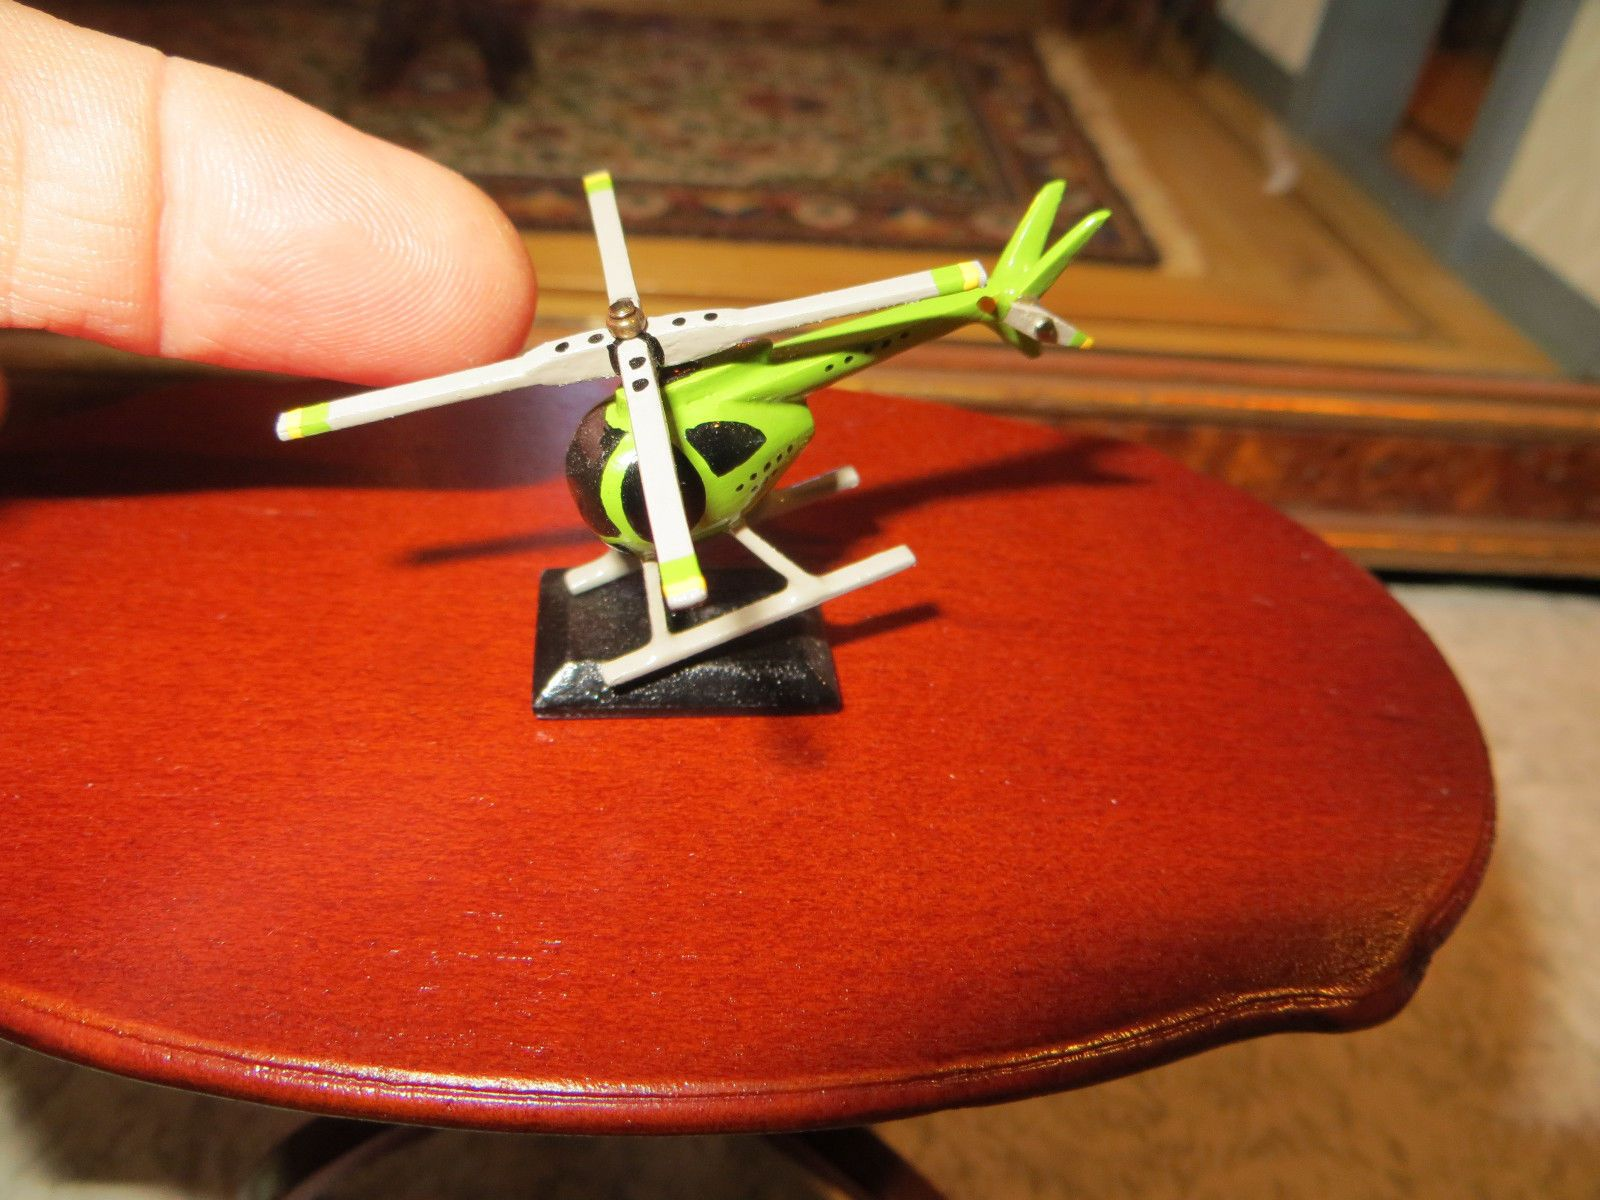 Robert Street - toy helicopter with moving parts; sold on ebay for $54